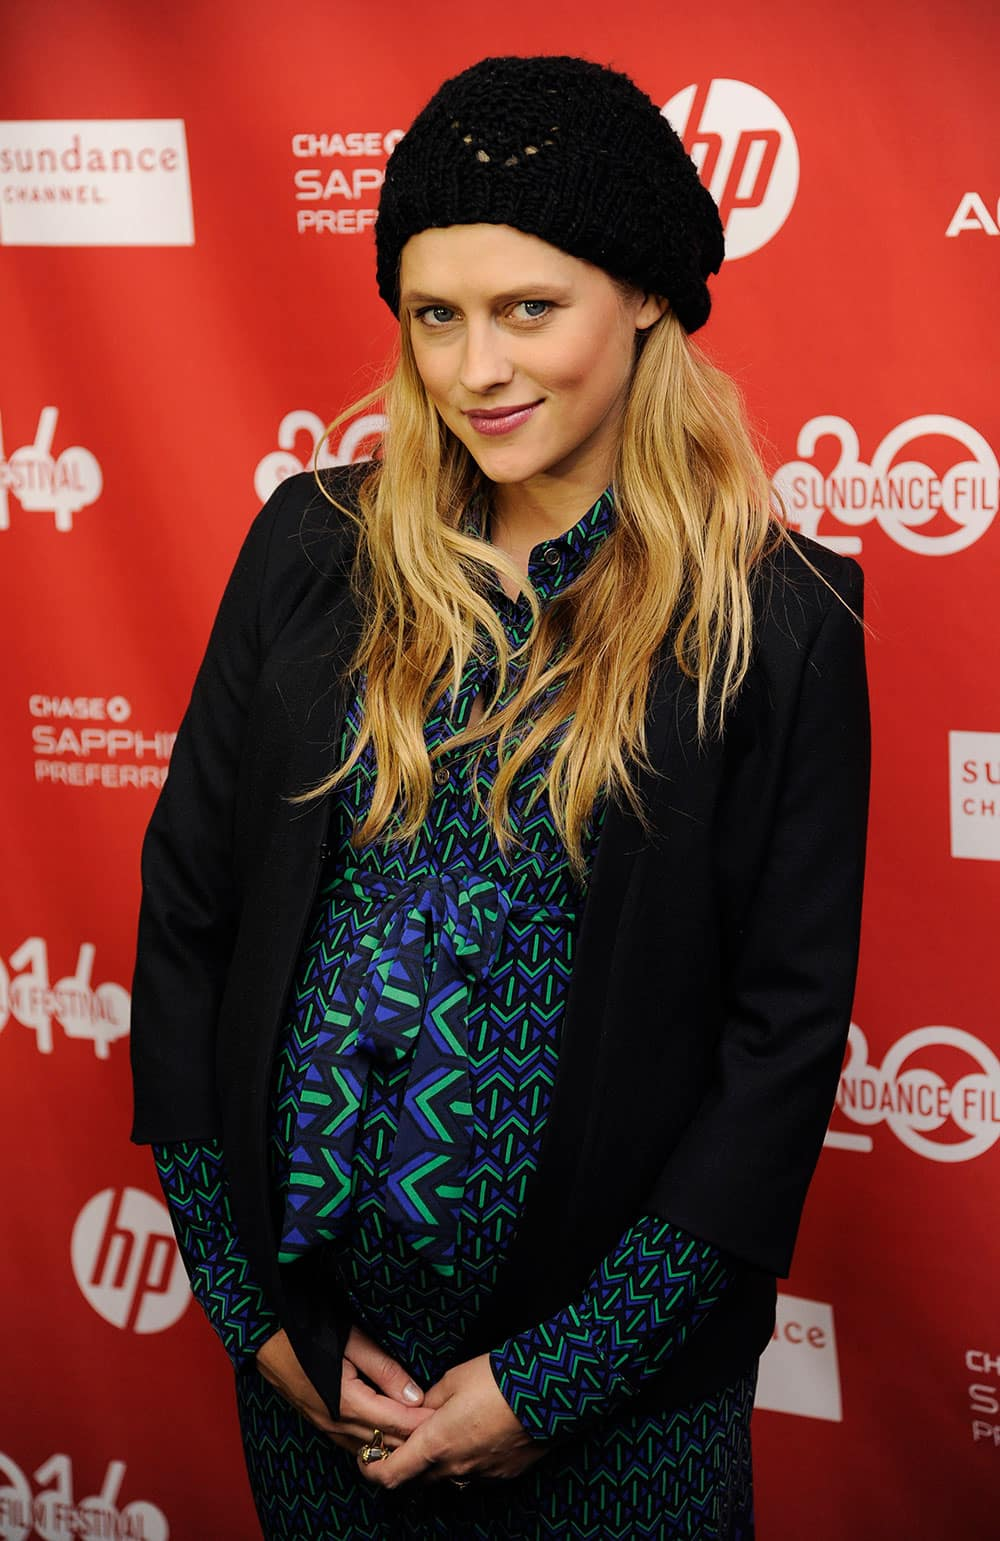 Actress Teresa Palmer poses at the premiere of the film `Happy Christmas` at the 2014 Sundance Film Festival, in Park City, Utah.